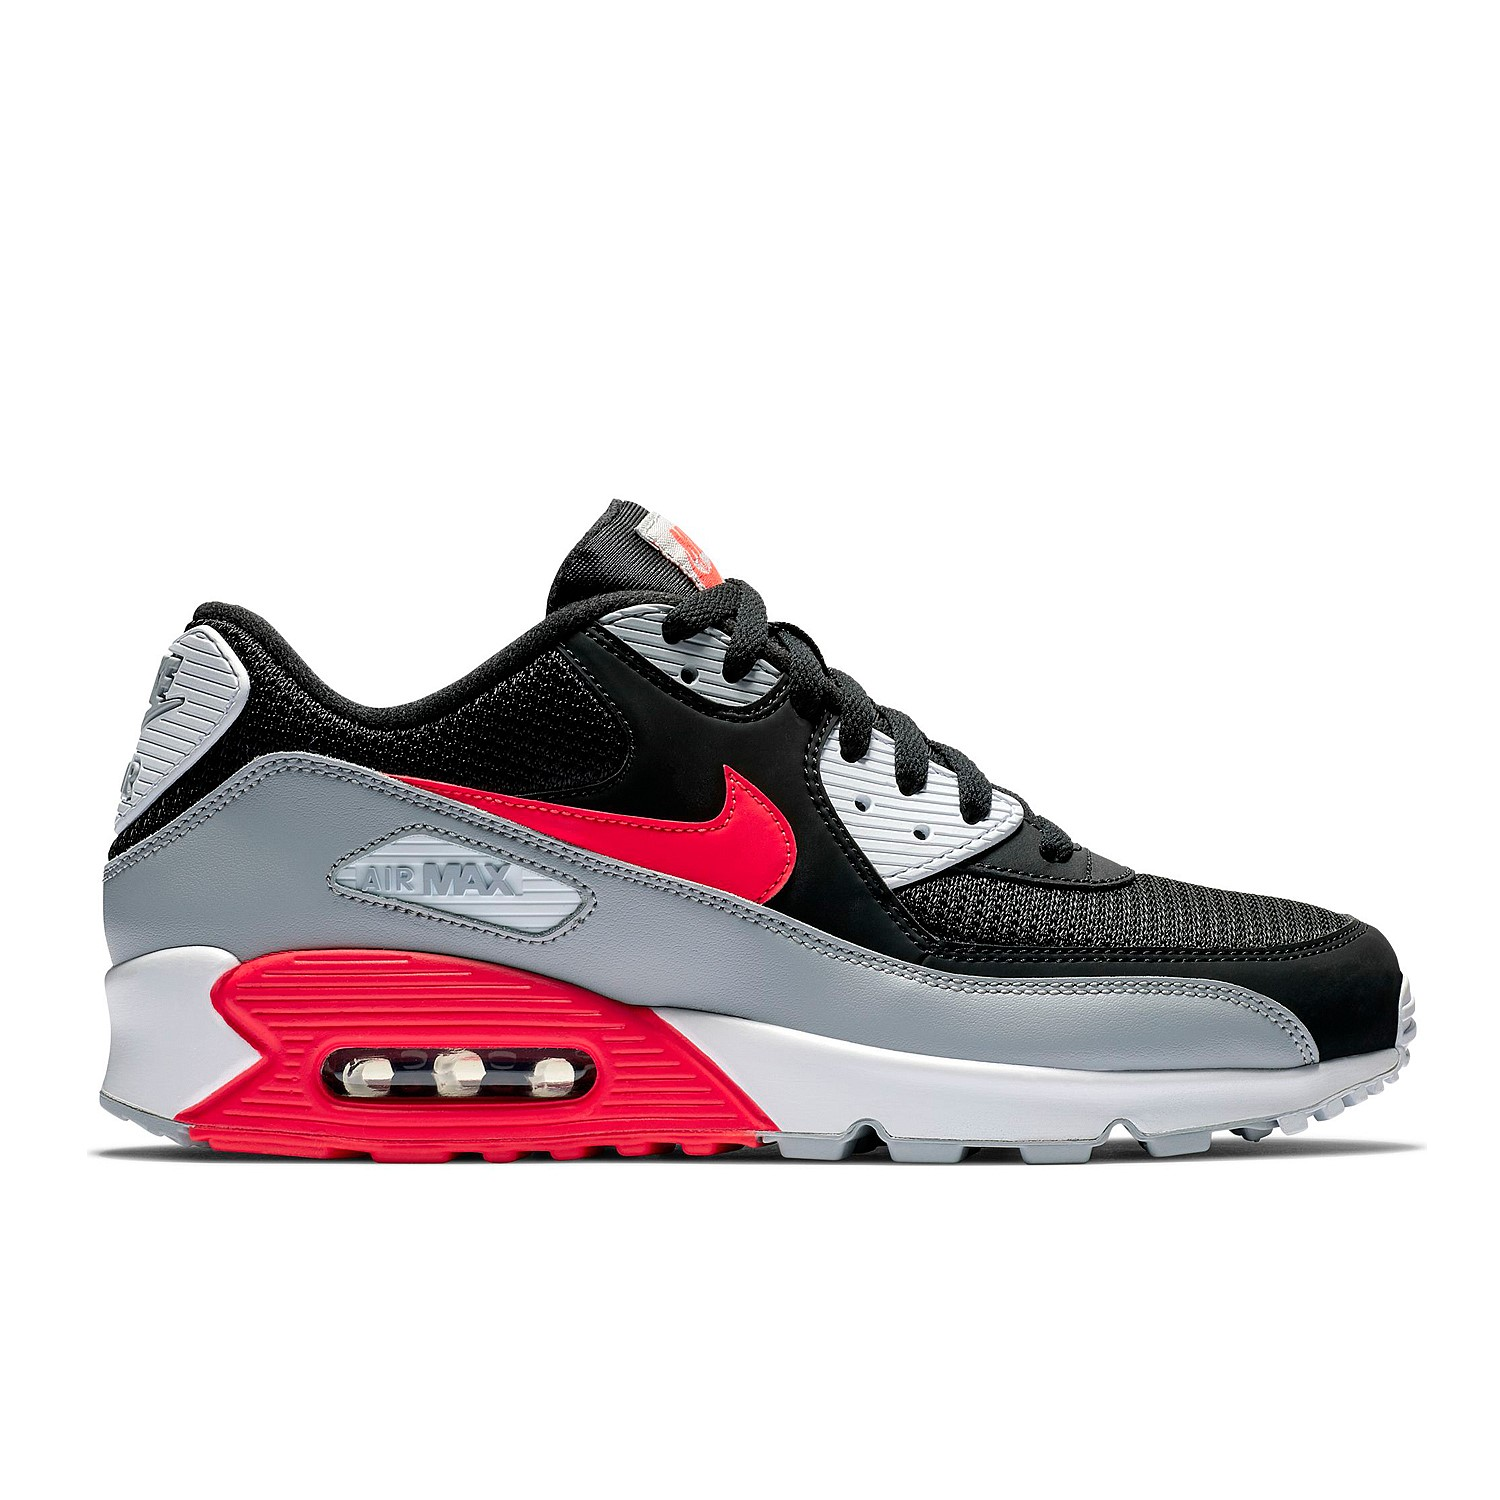 new concept c06fc 2268c Men s Footwear   Men s Lifestyle and Training Shoes Online   Stirling  Sports - Air Max  90 Essential Mens